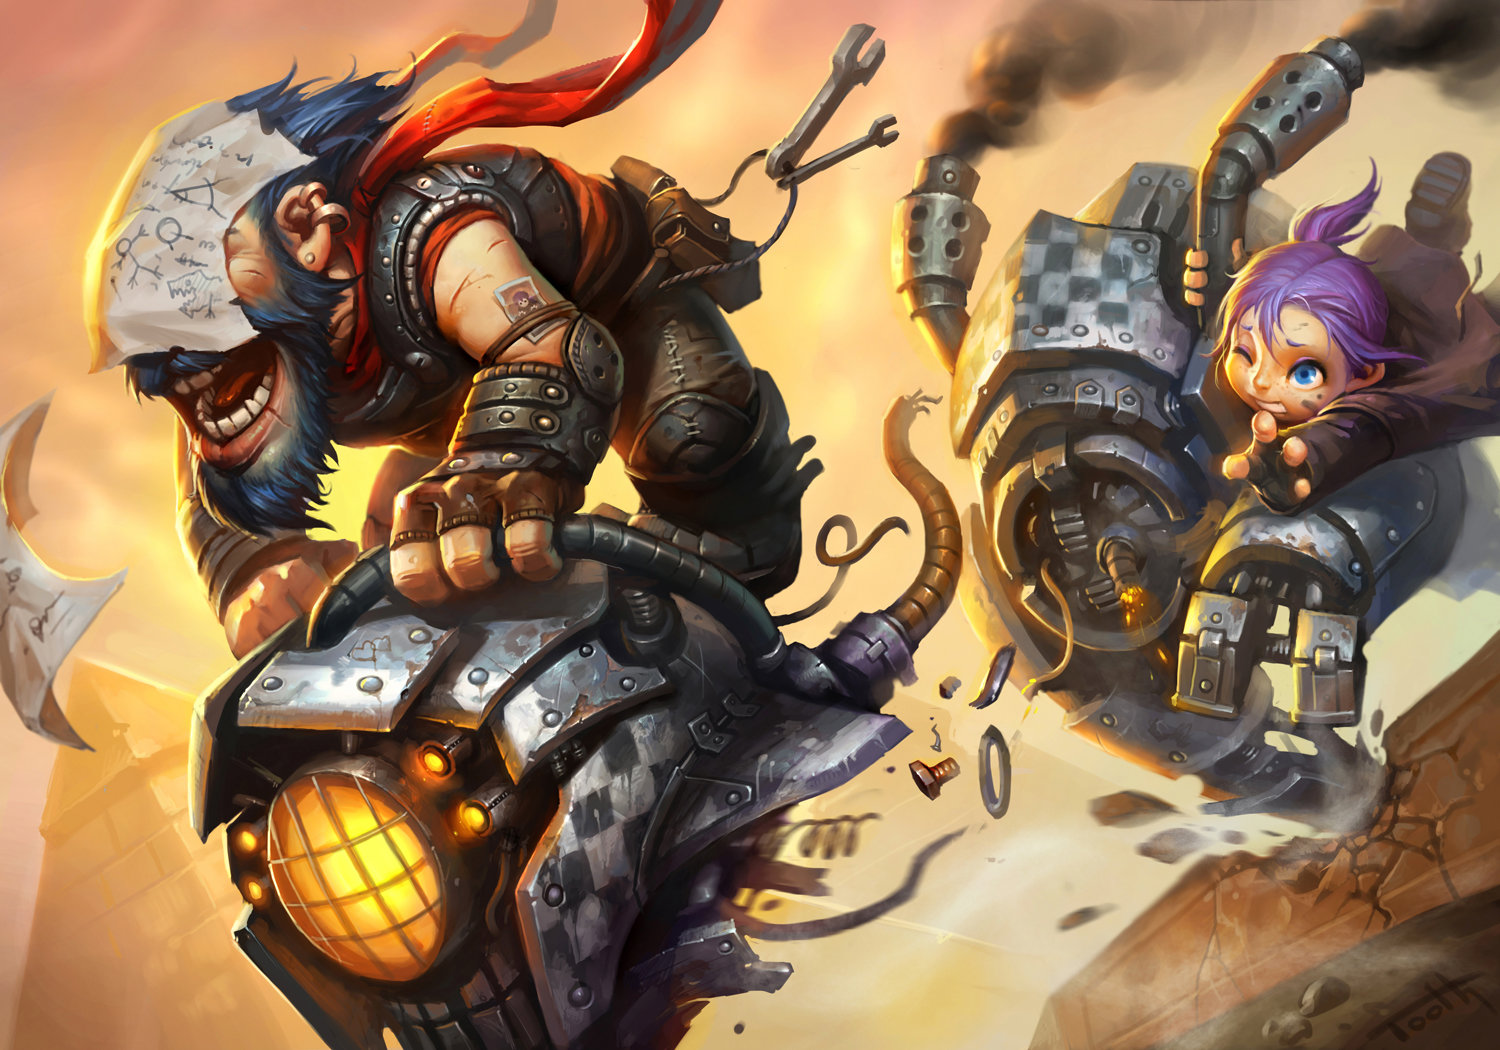 WoW mage vs gnome xxx image